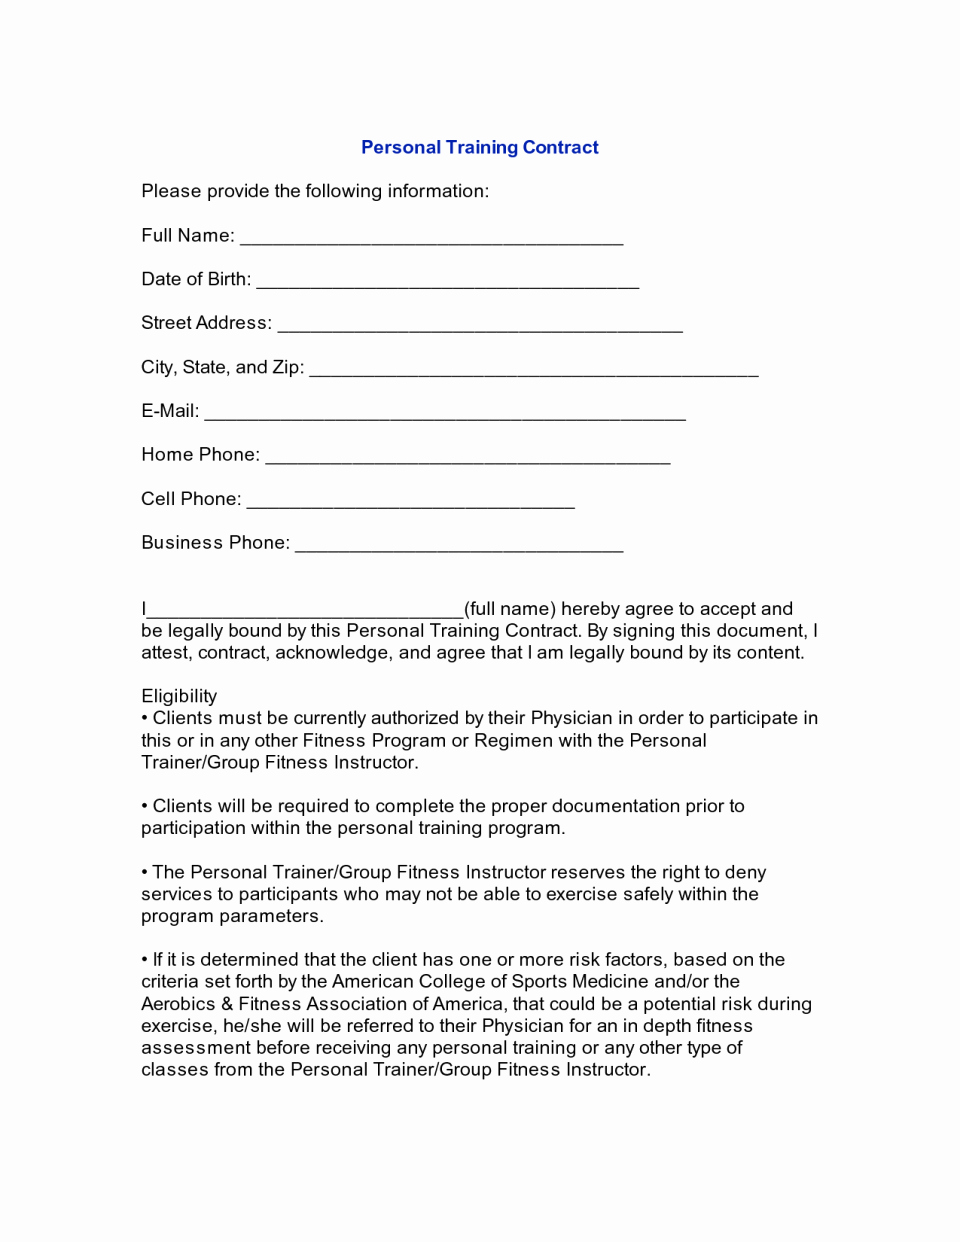 Personal Training Client Agreement Template Contract Free